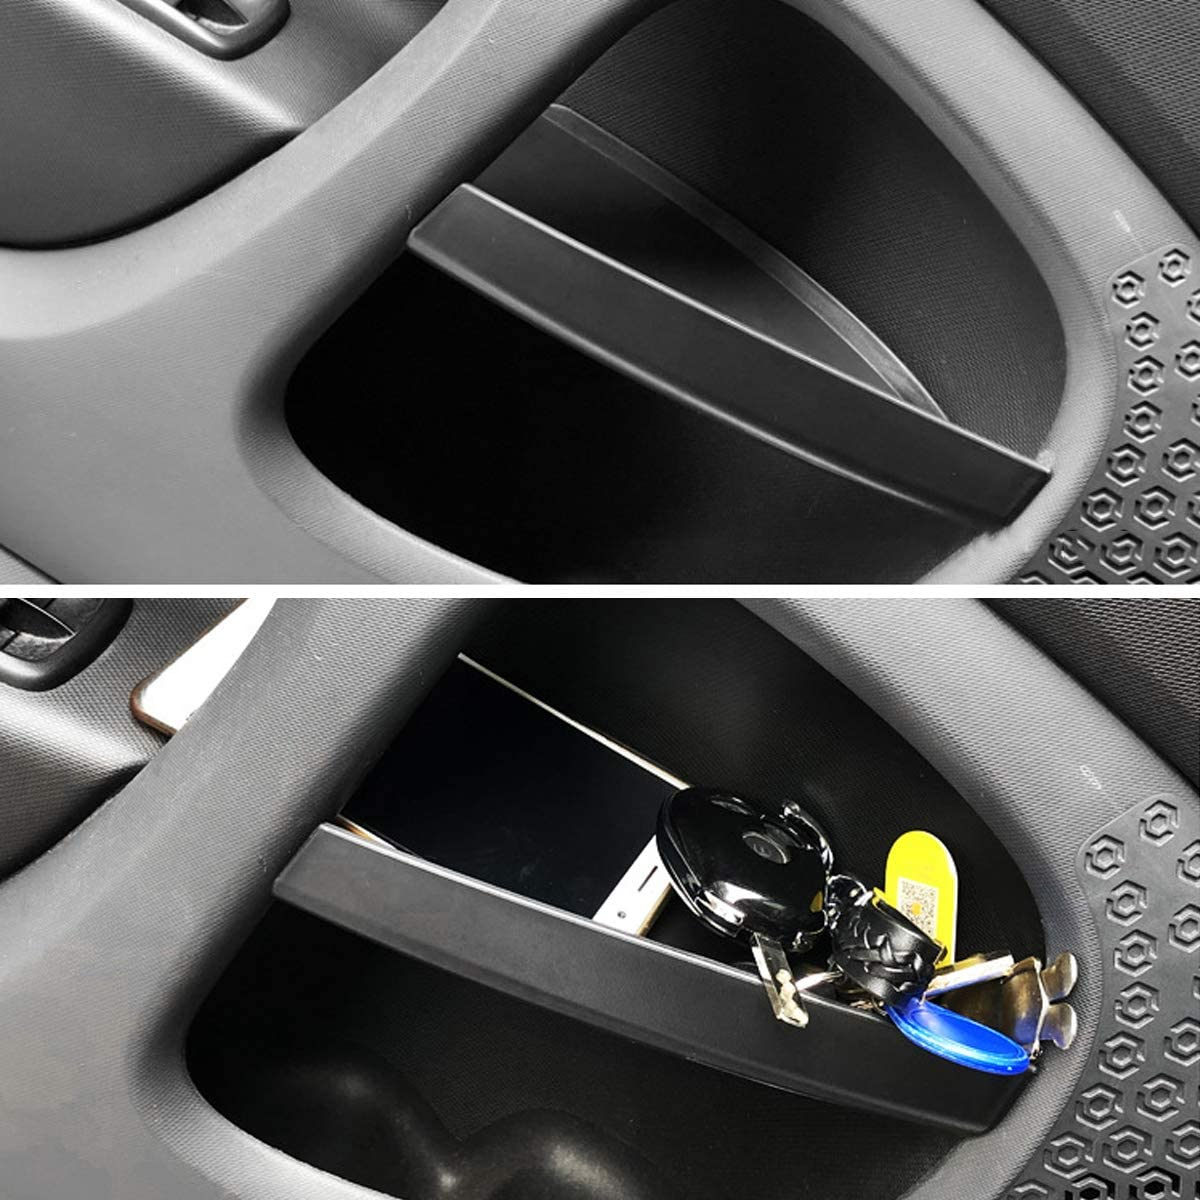 CHEYA ABS Plastic Car Door Handle Storage Box Container Glove Auto Organizer for Mercedes Benz Smart 453 fortwo 2015-2019